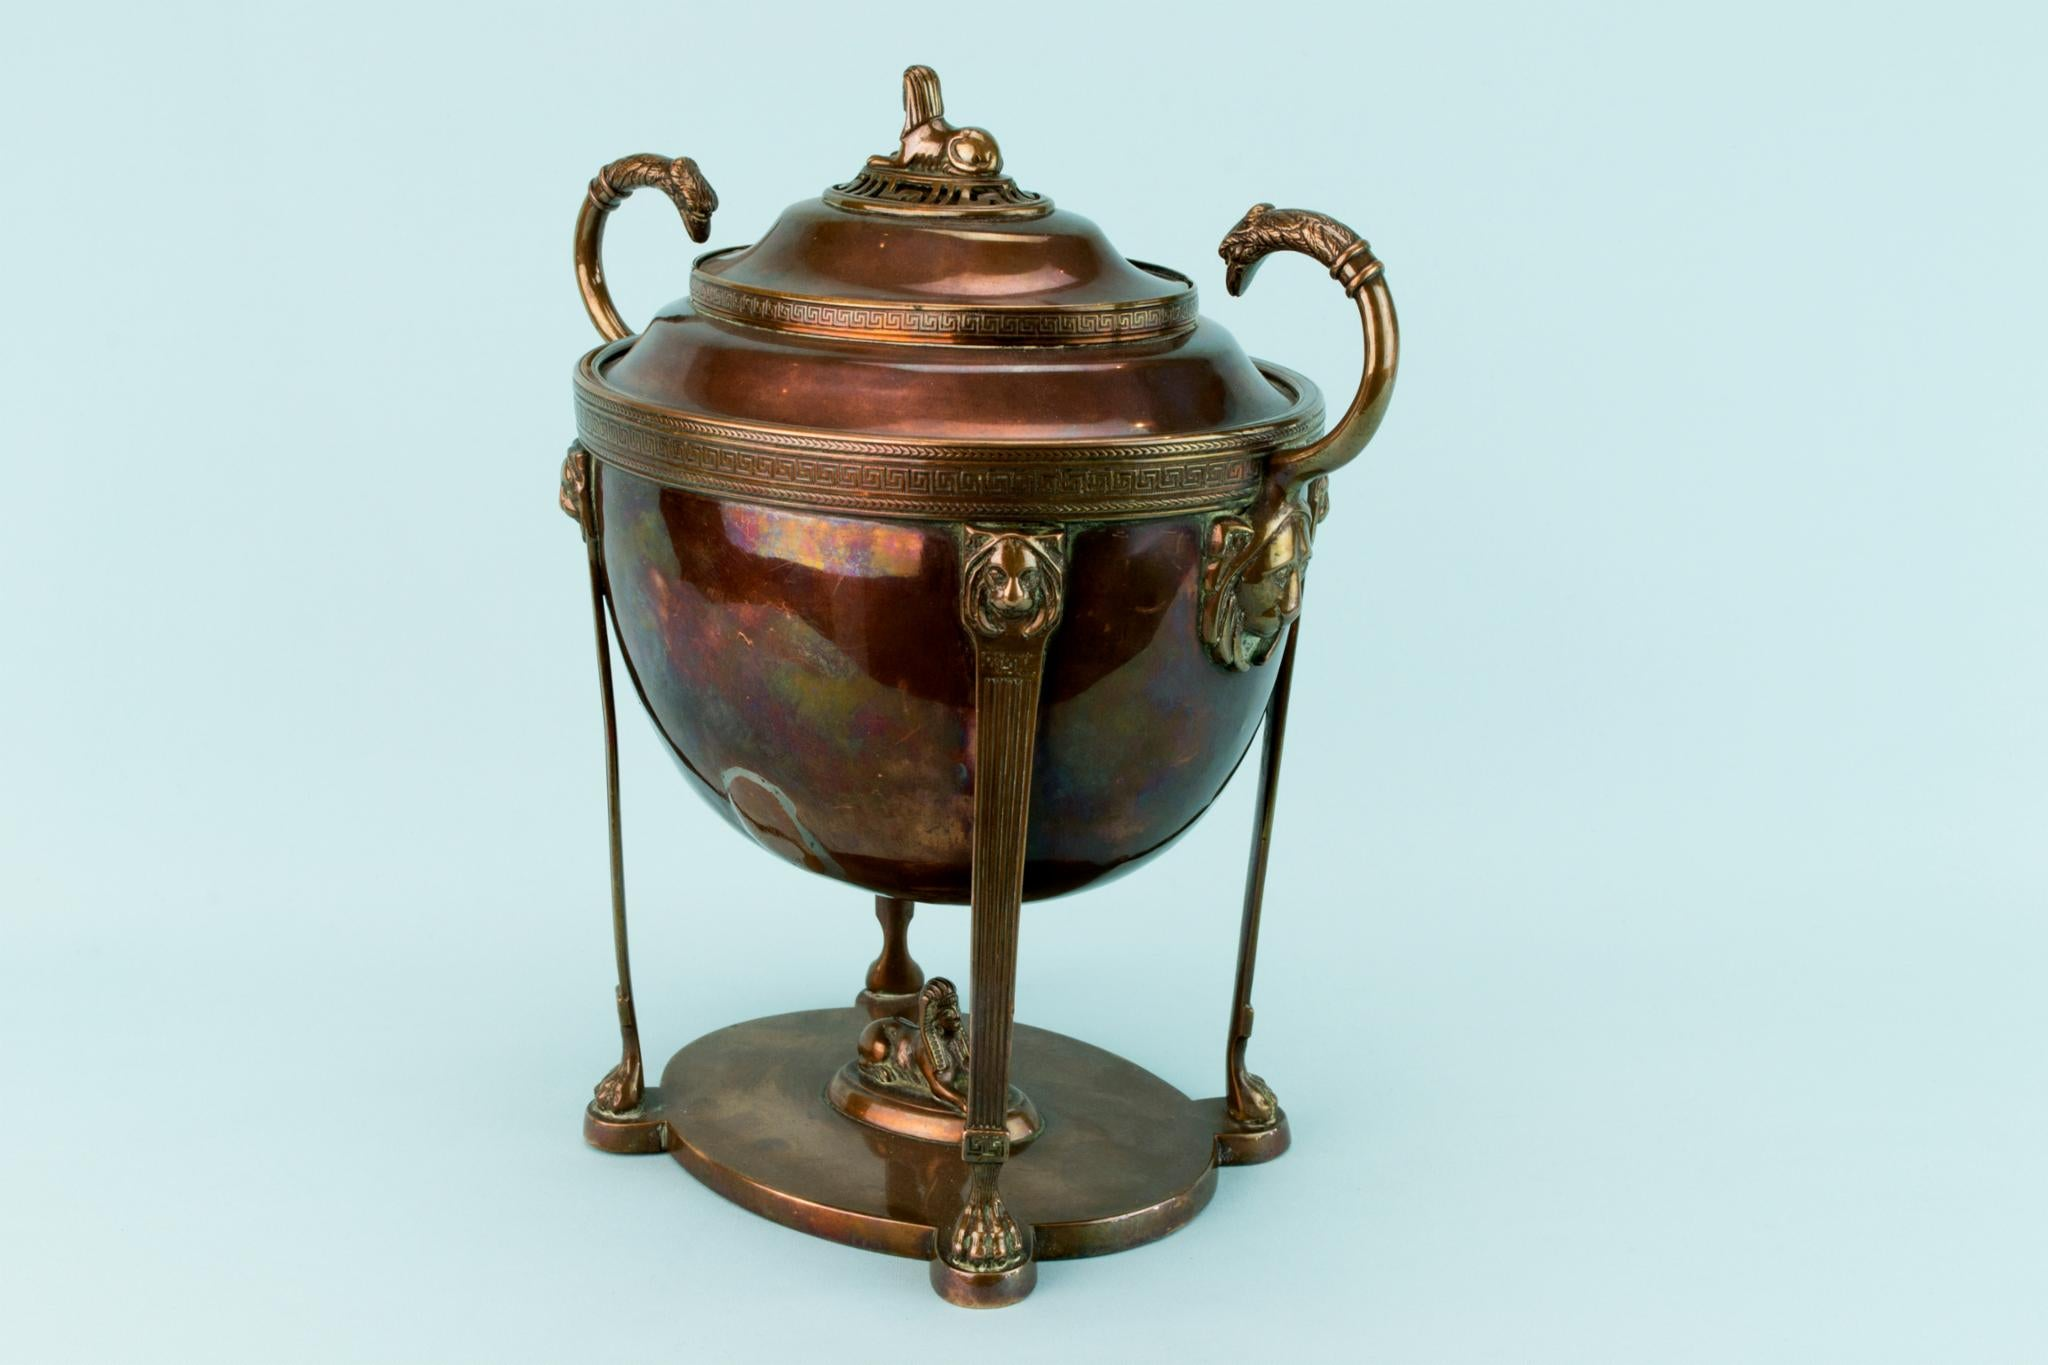 Regency Bronze Decorative Urn, English Early 1800s